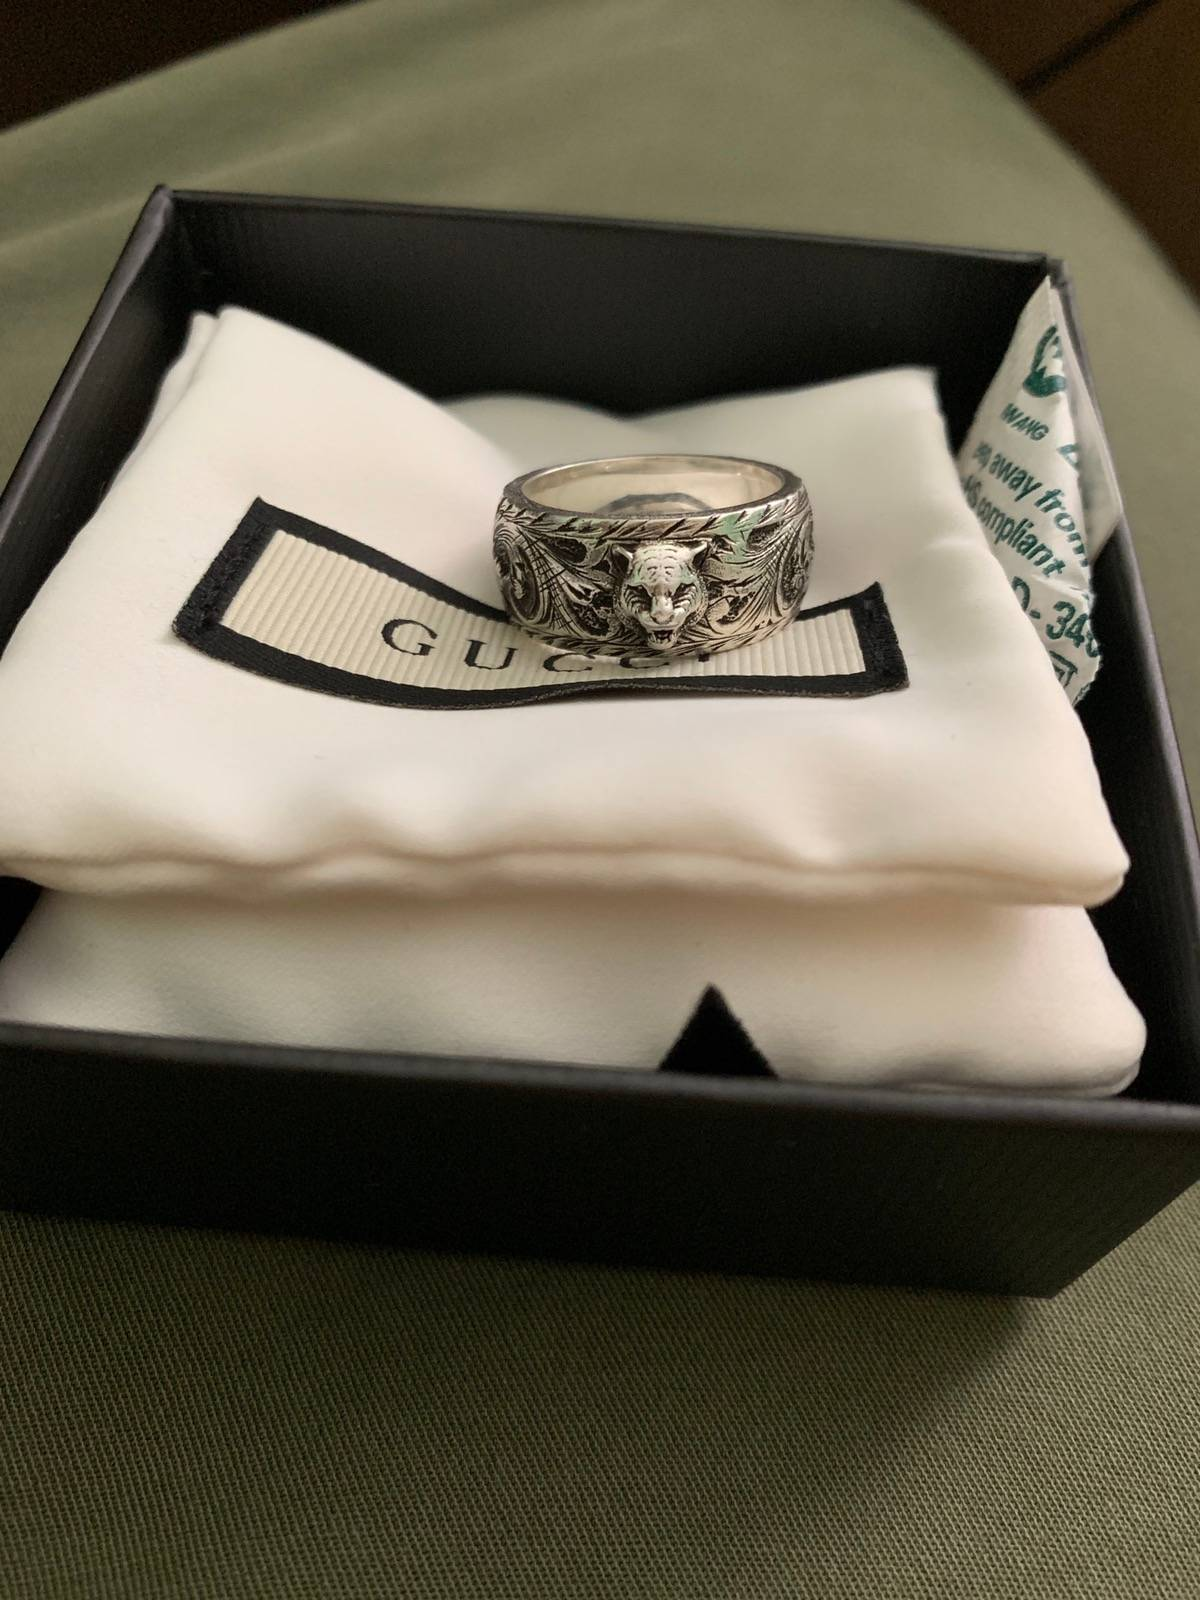 b280d04e94 Gucci Gucci Thin Silver Ring With Feline Head Size One Size $230